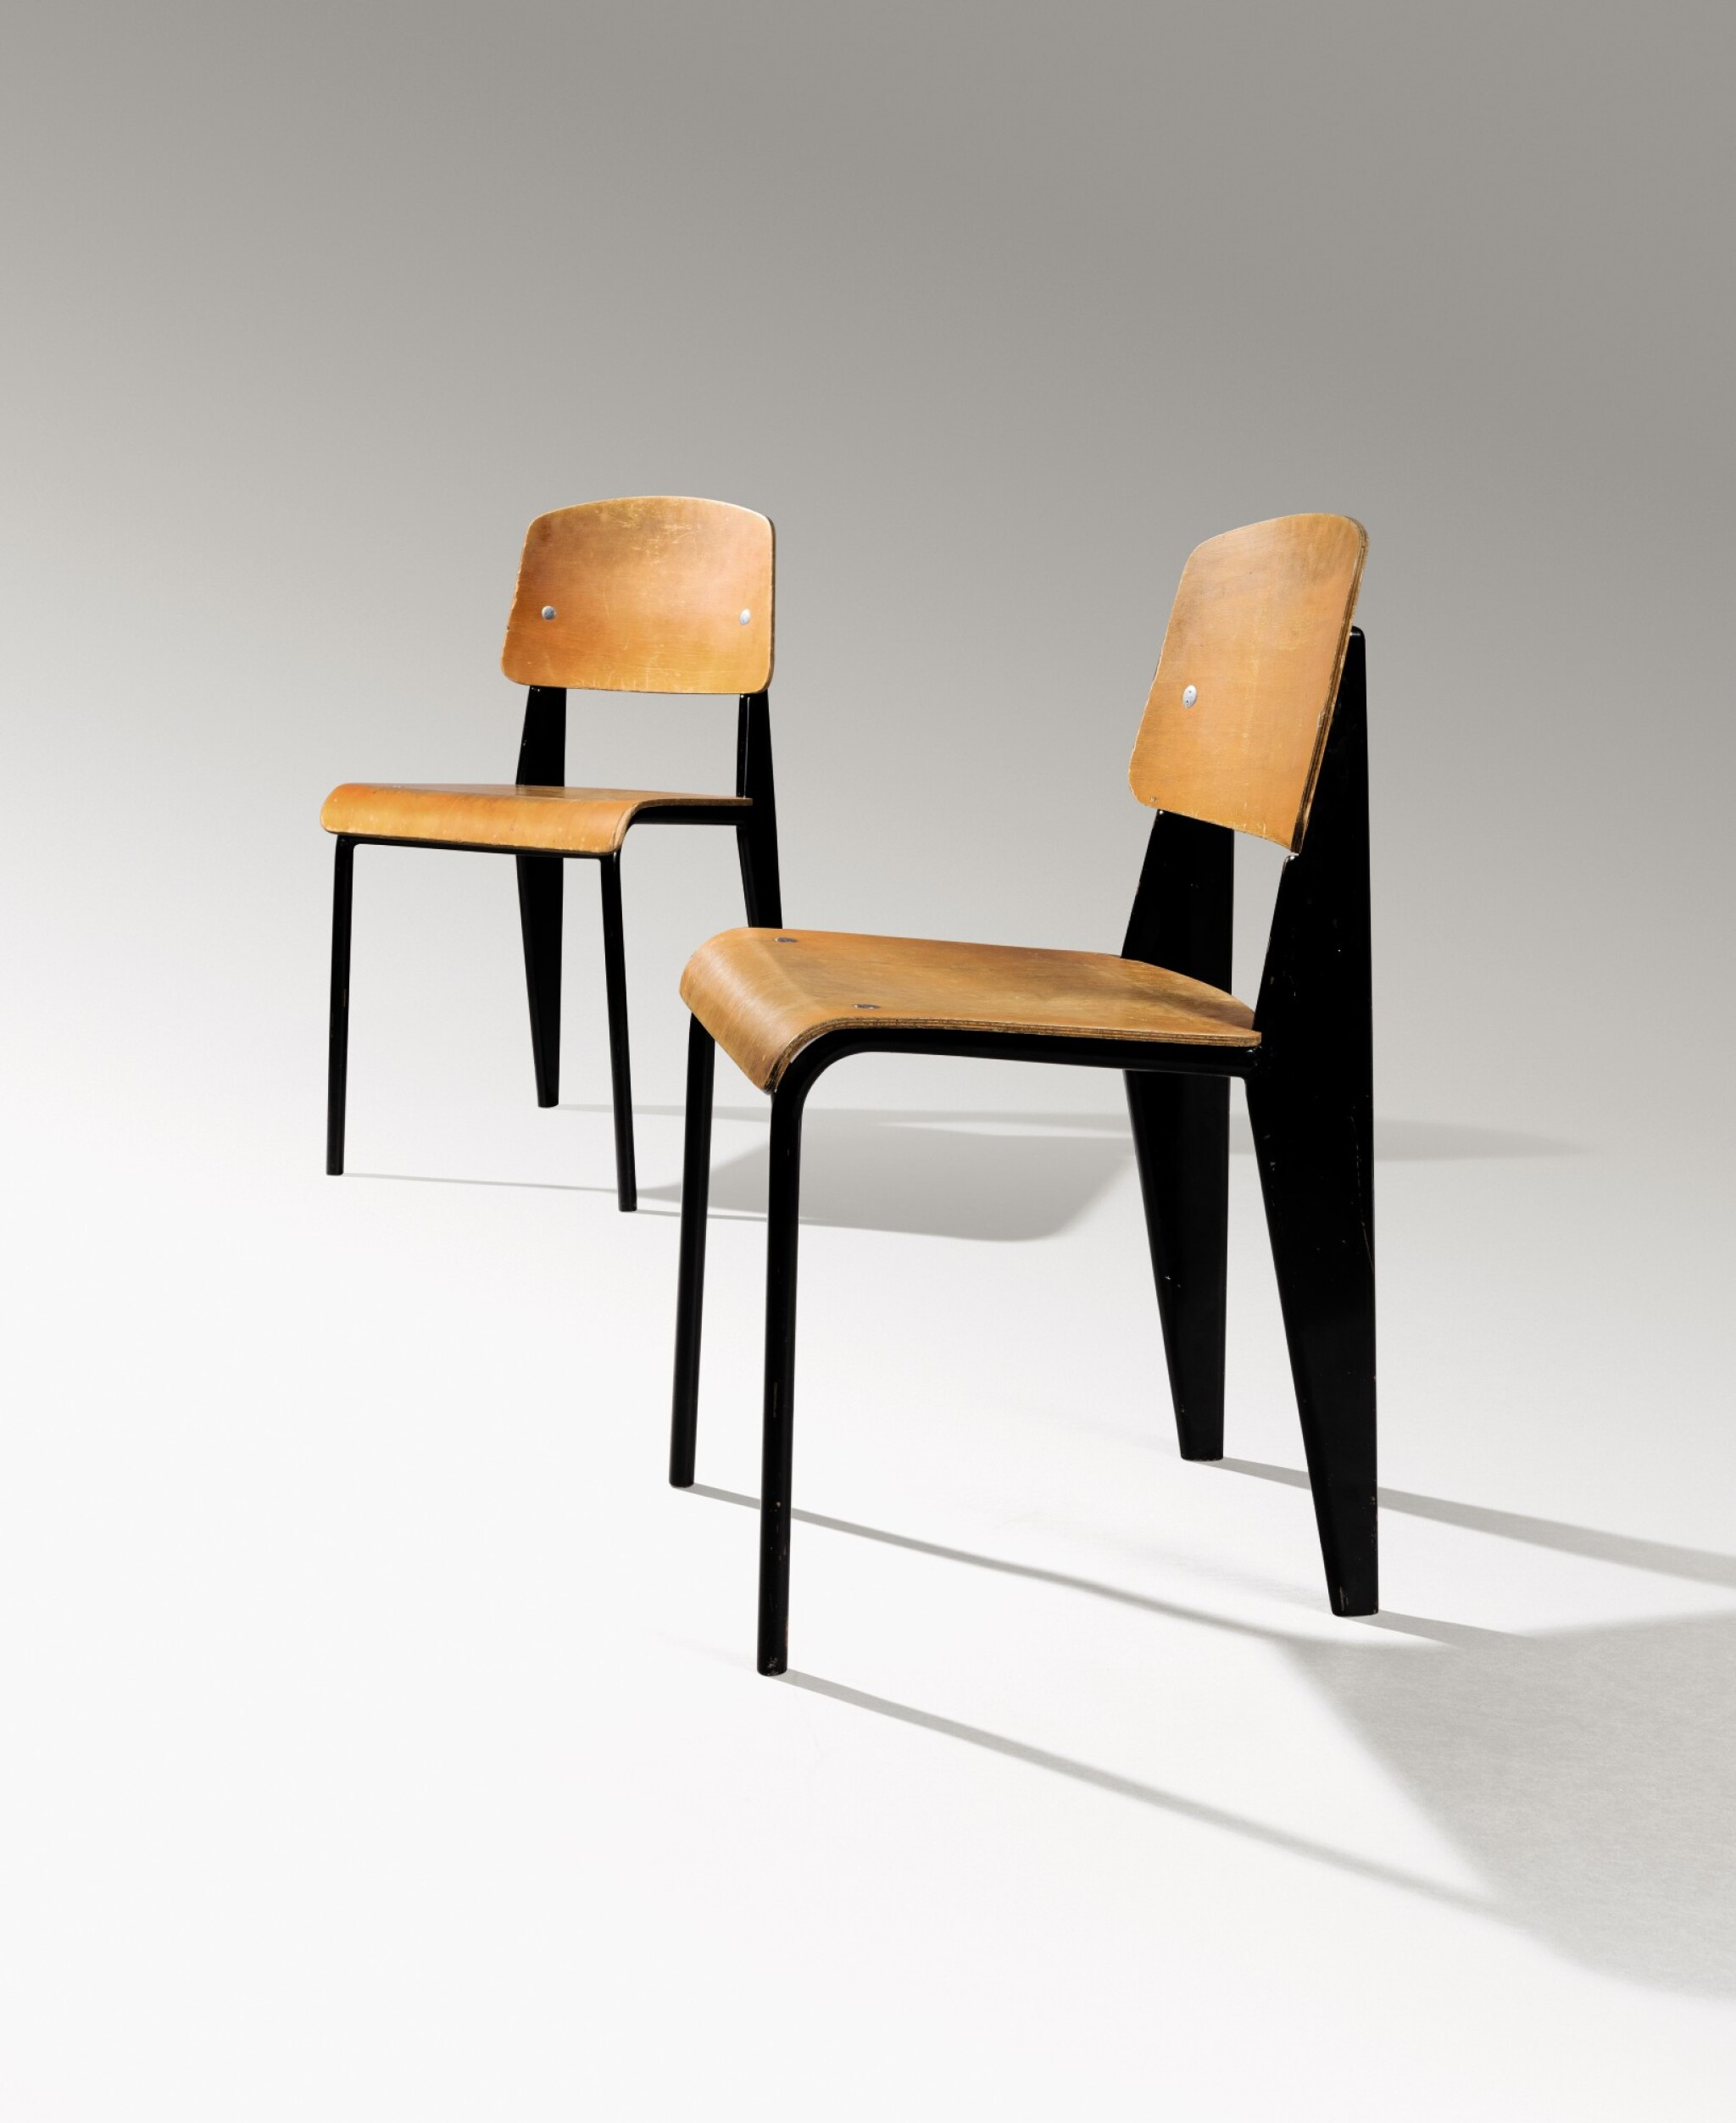 View full screen - View 1 of Lot 7. Pair of Standard chairs, model no. 305, circa 1950.